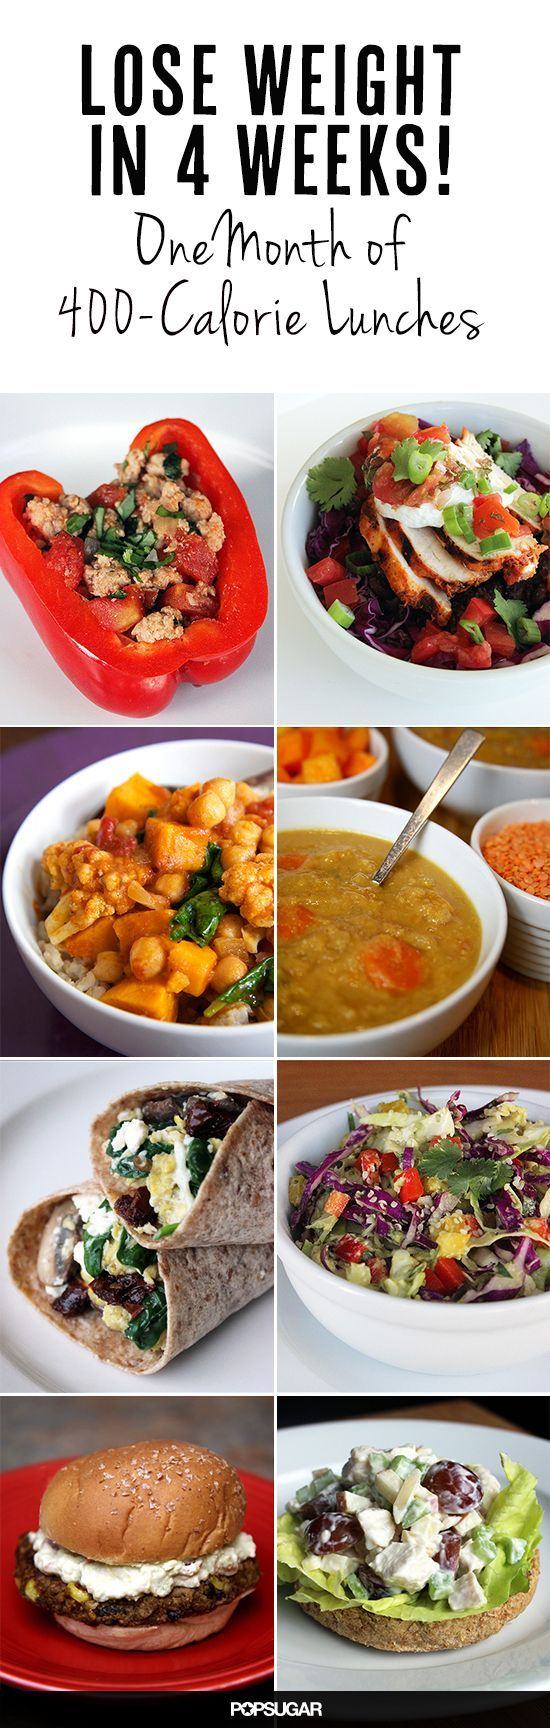 One Month of 400 Calorie Lunches // great pack aheads for the work week #organize #weightloss